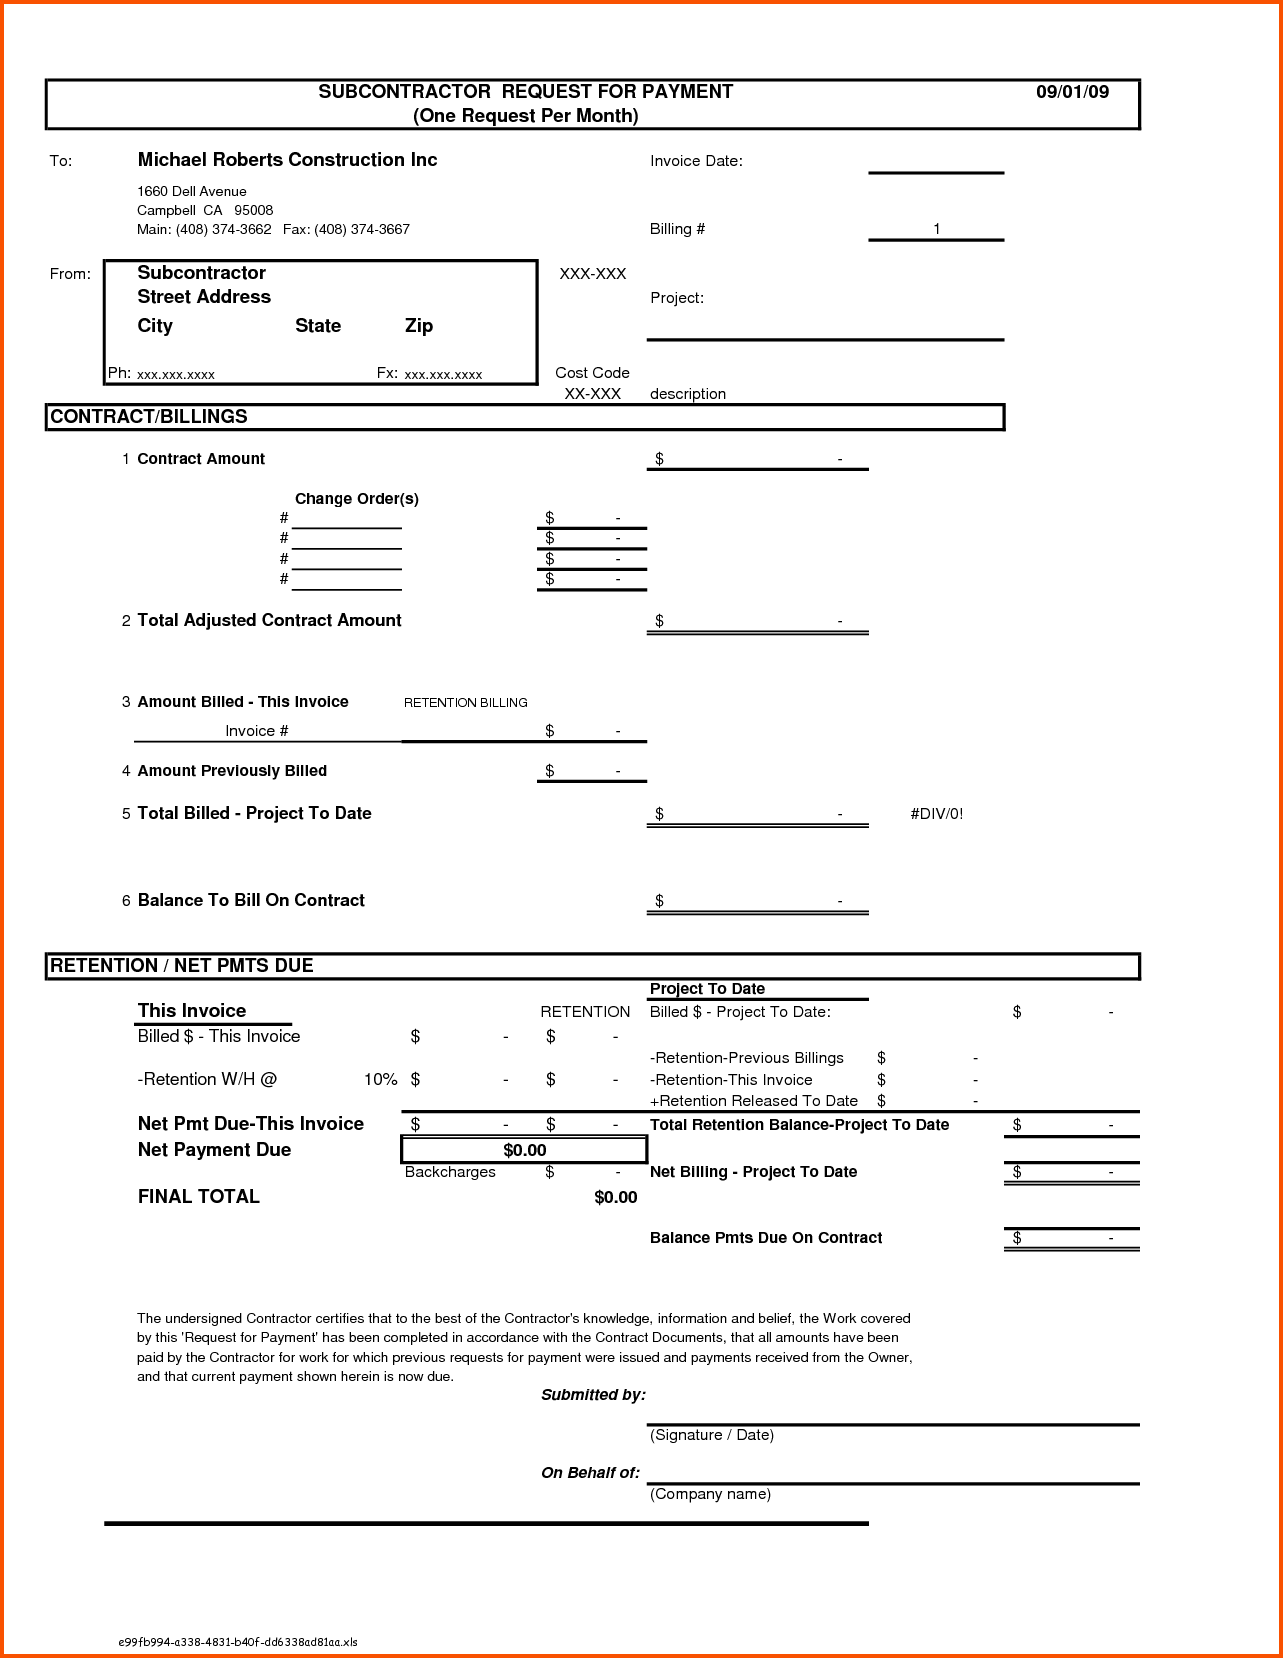 Invoice Template for Contractors and Construction Invoice Templates Rabitah